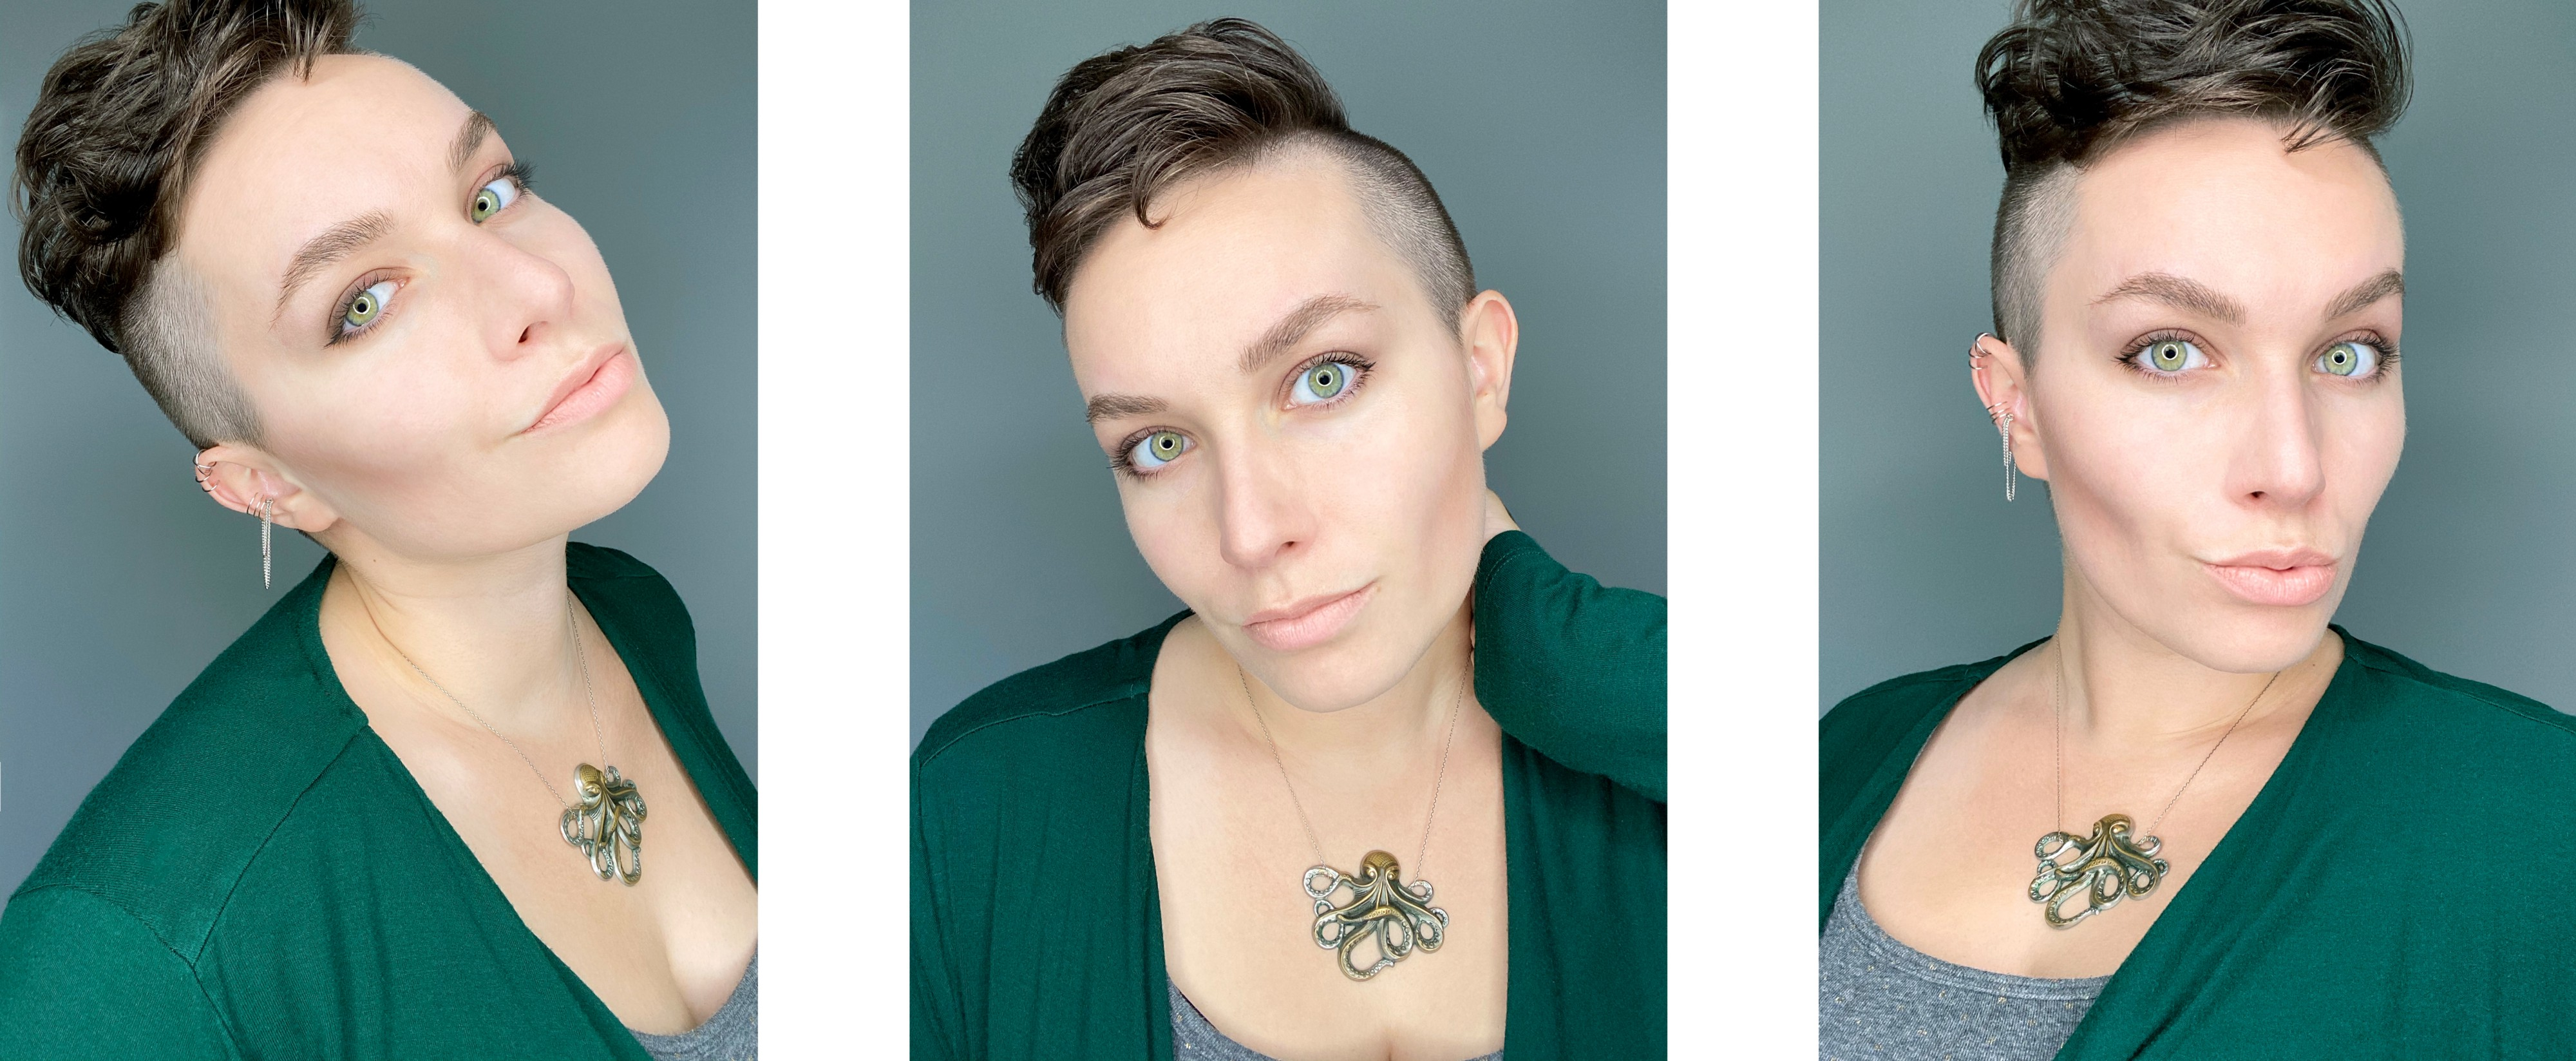 A triptych of a short-haired young woman's selfies where she's wearing a green blouse and an octopus necklace.